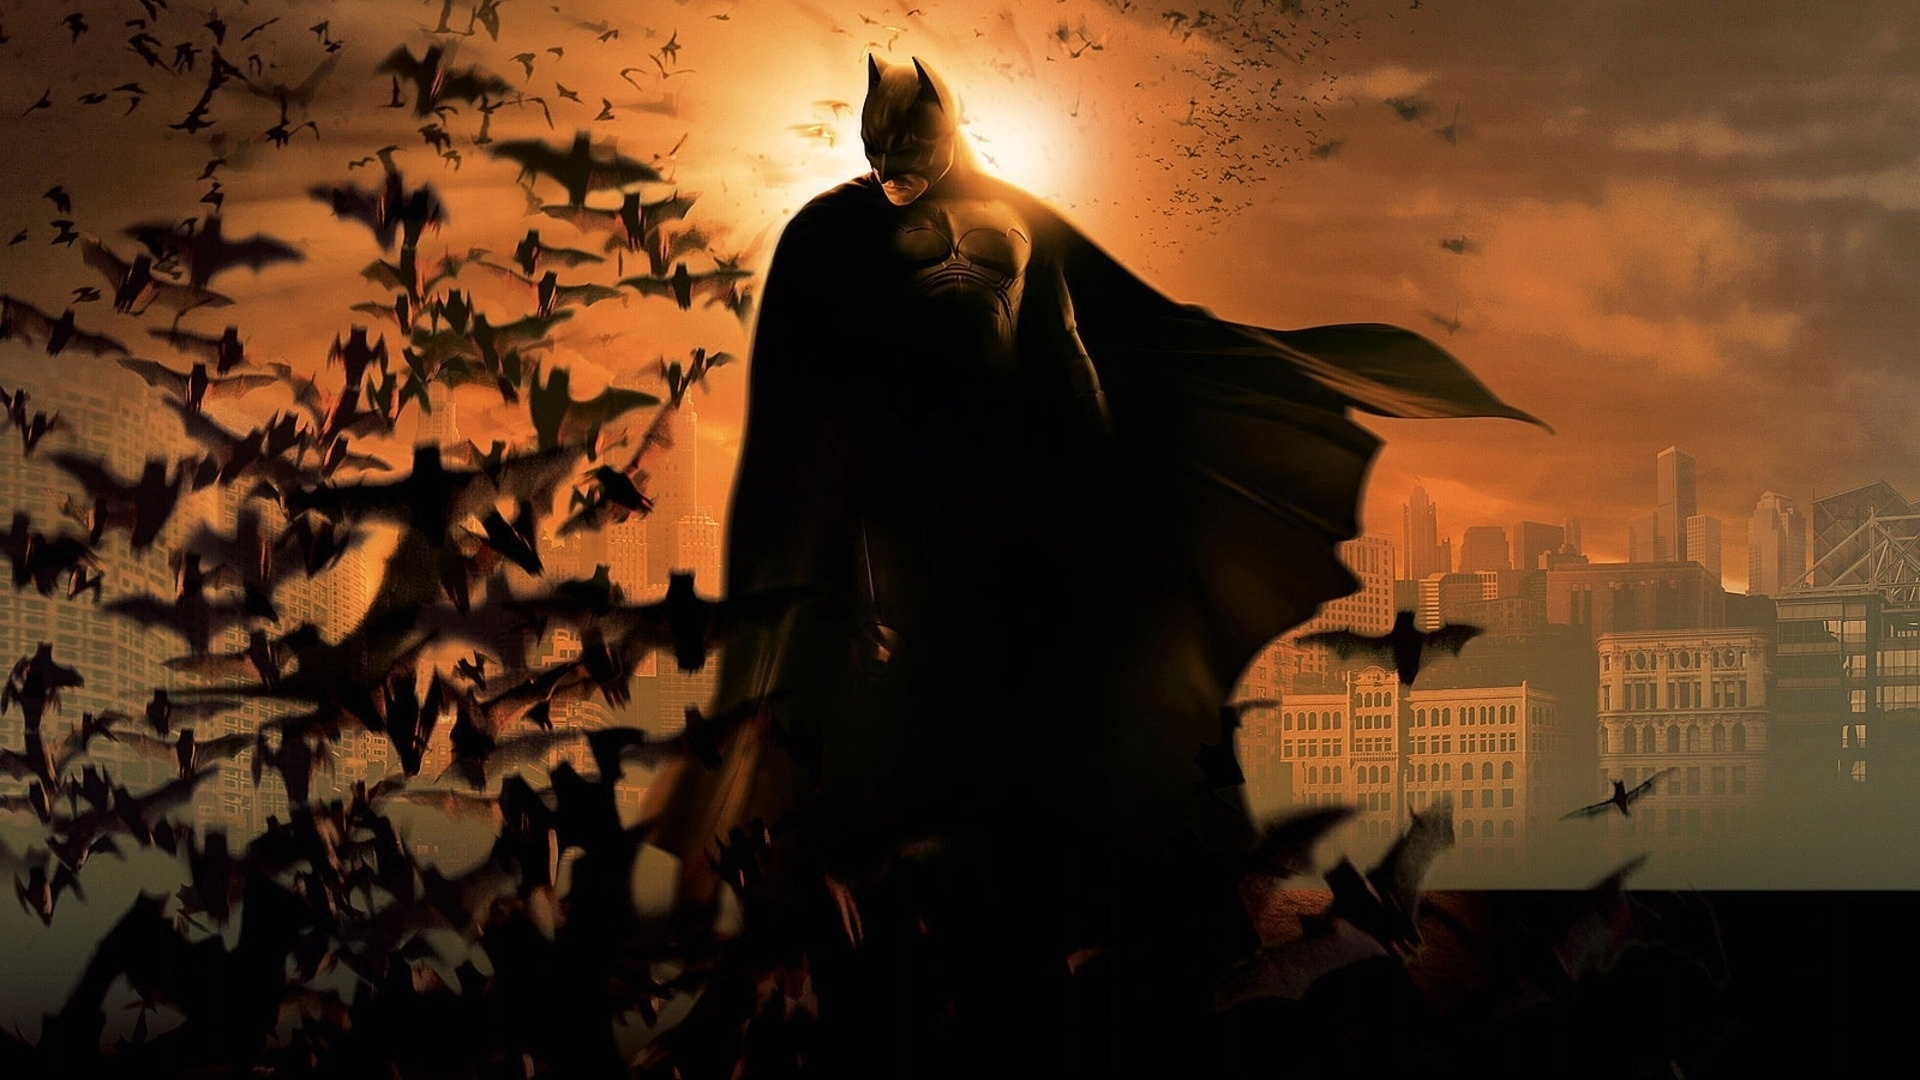 40807 download wallpaper Cinema, Batman screensavers and pictures for free